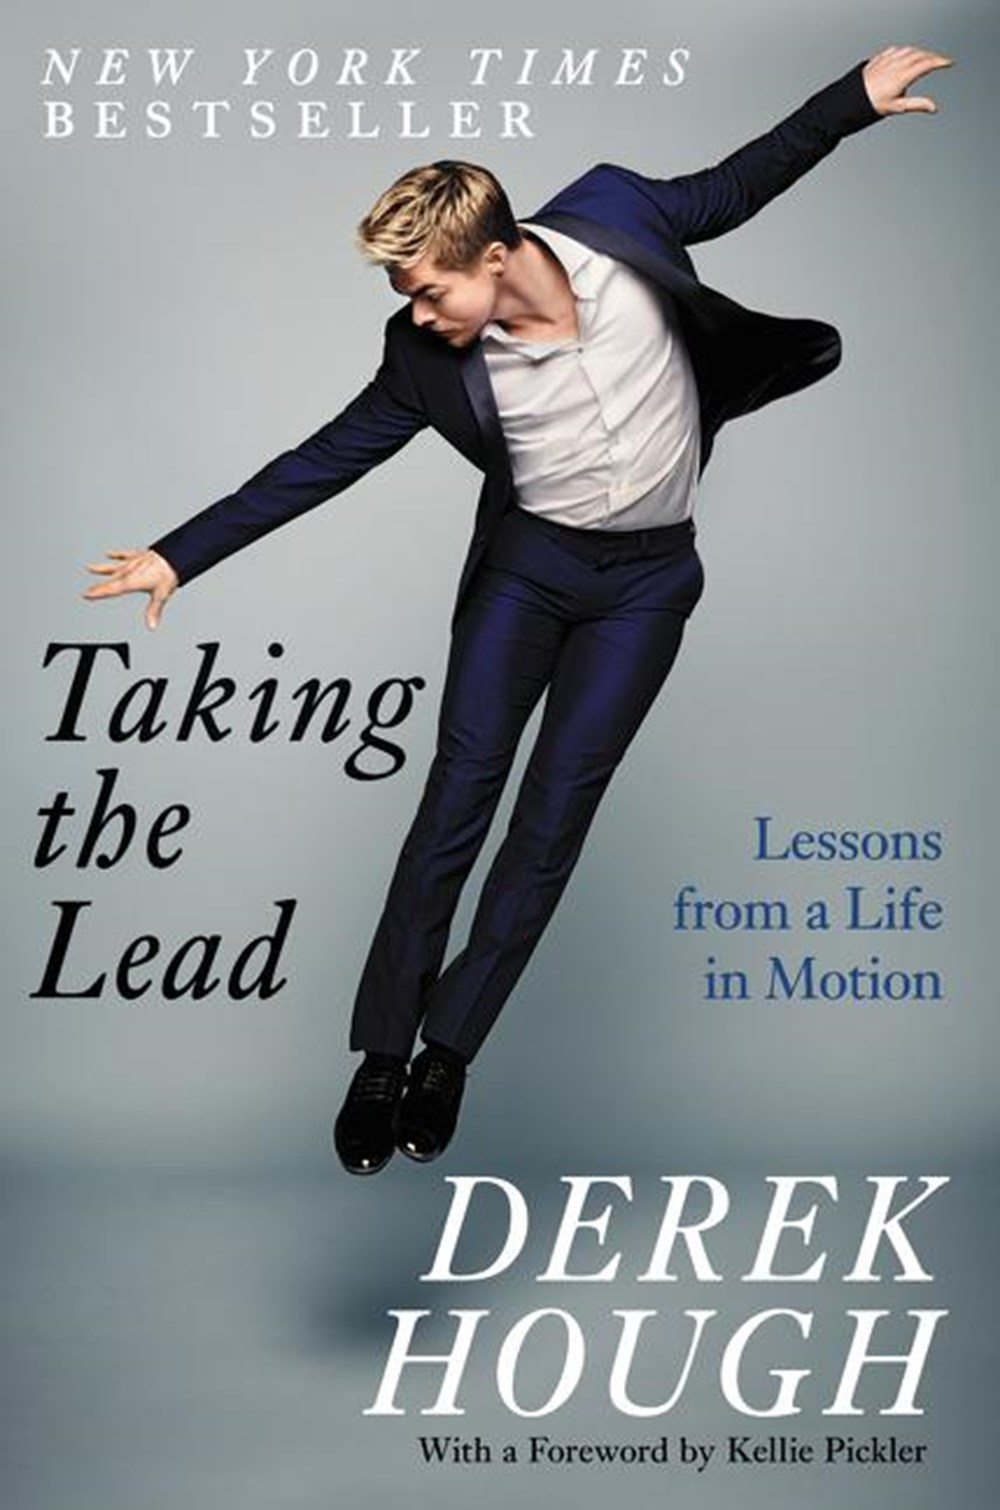 Taking the Lead Lessons from a Life in Motion